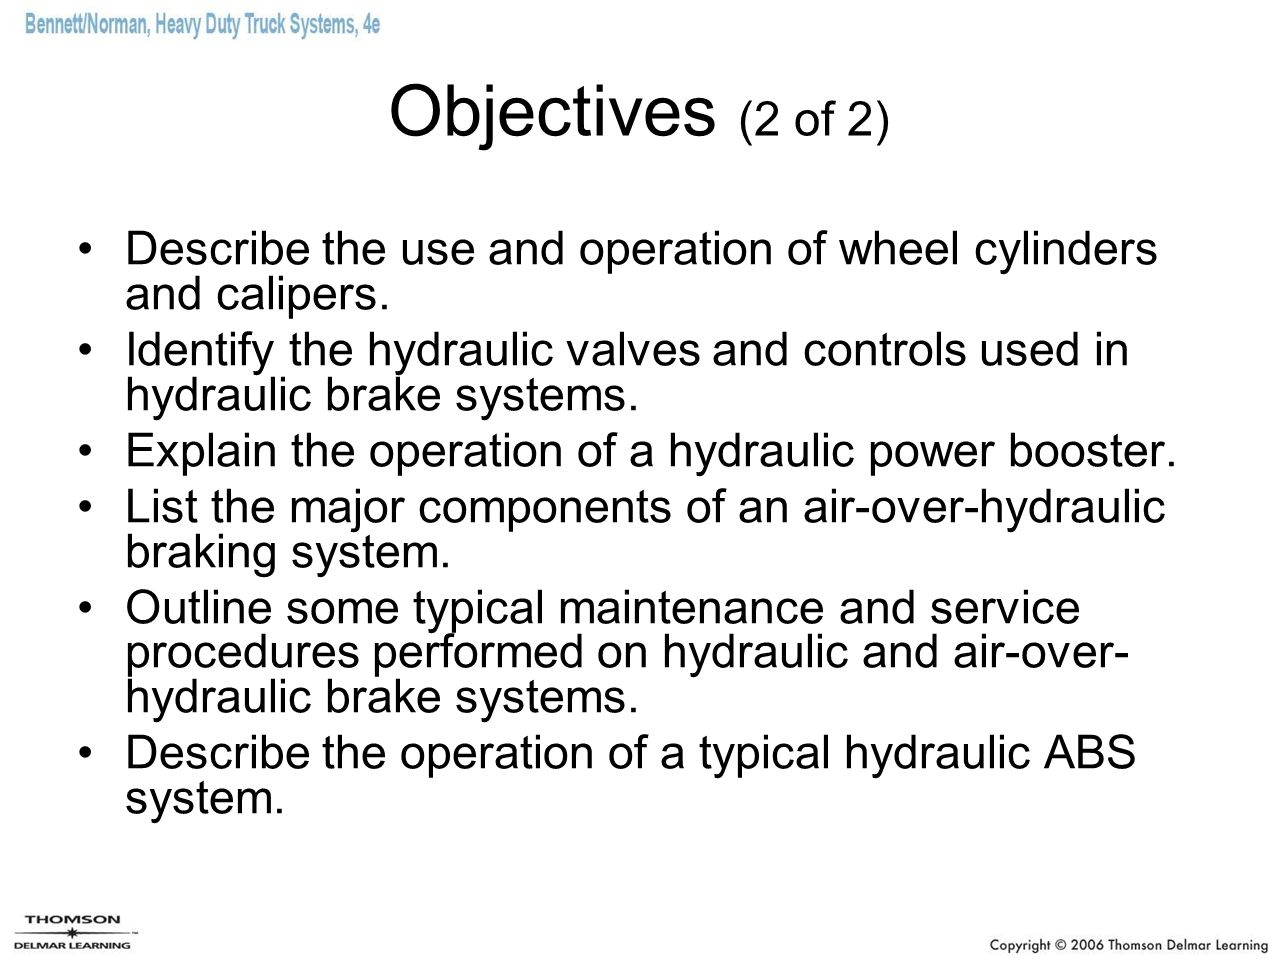 Objectives (2 of 2) Describe the use and operation of wheel cylinders and calipers. Identify the hydraulic valves and controls used in hydraulic brake